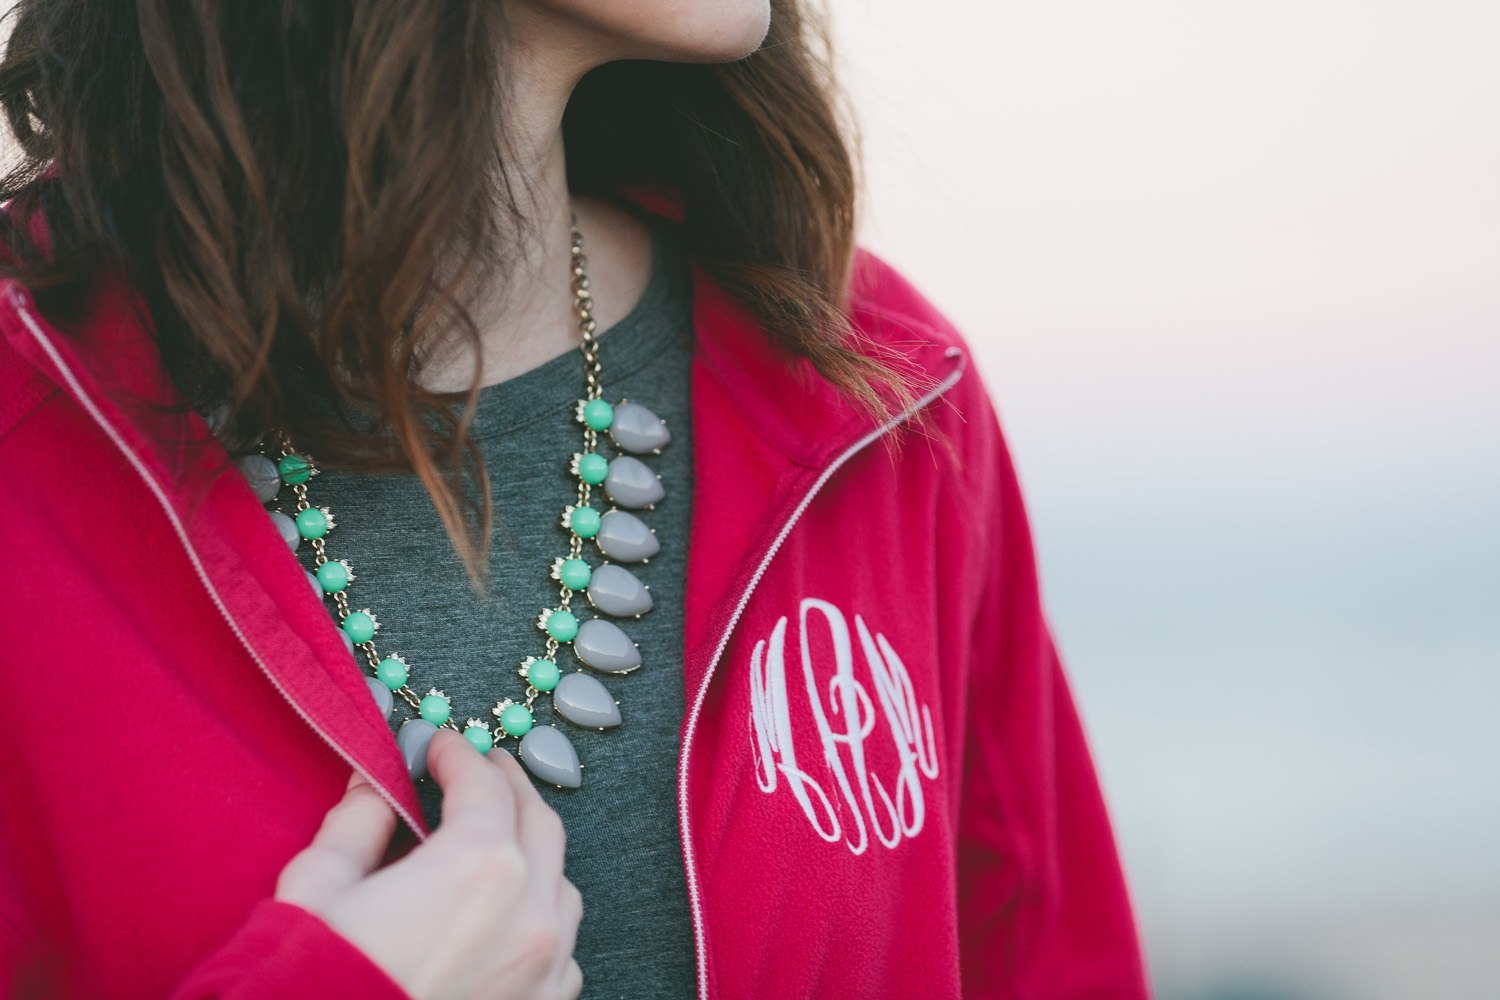 Marley Lilly zip up